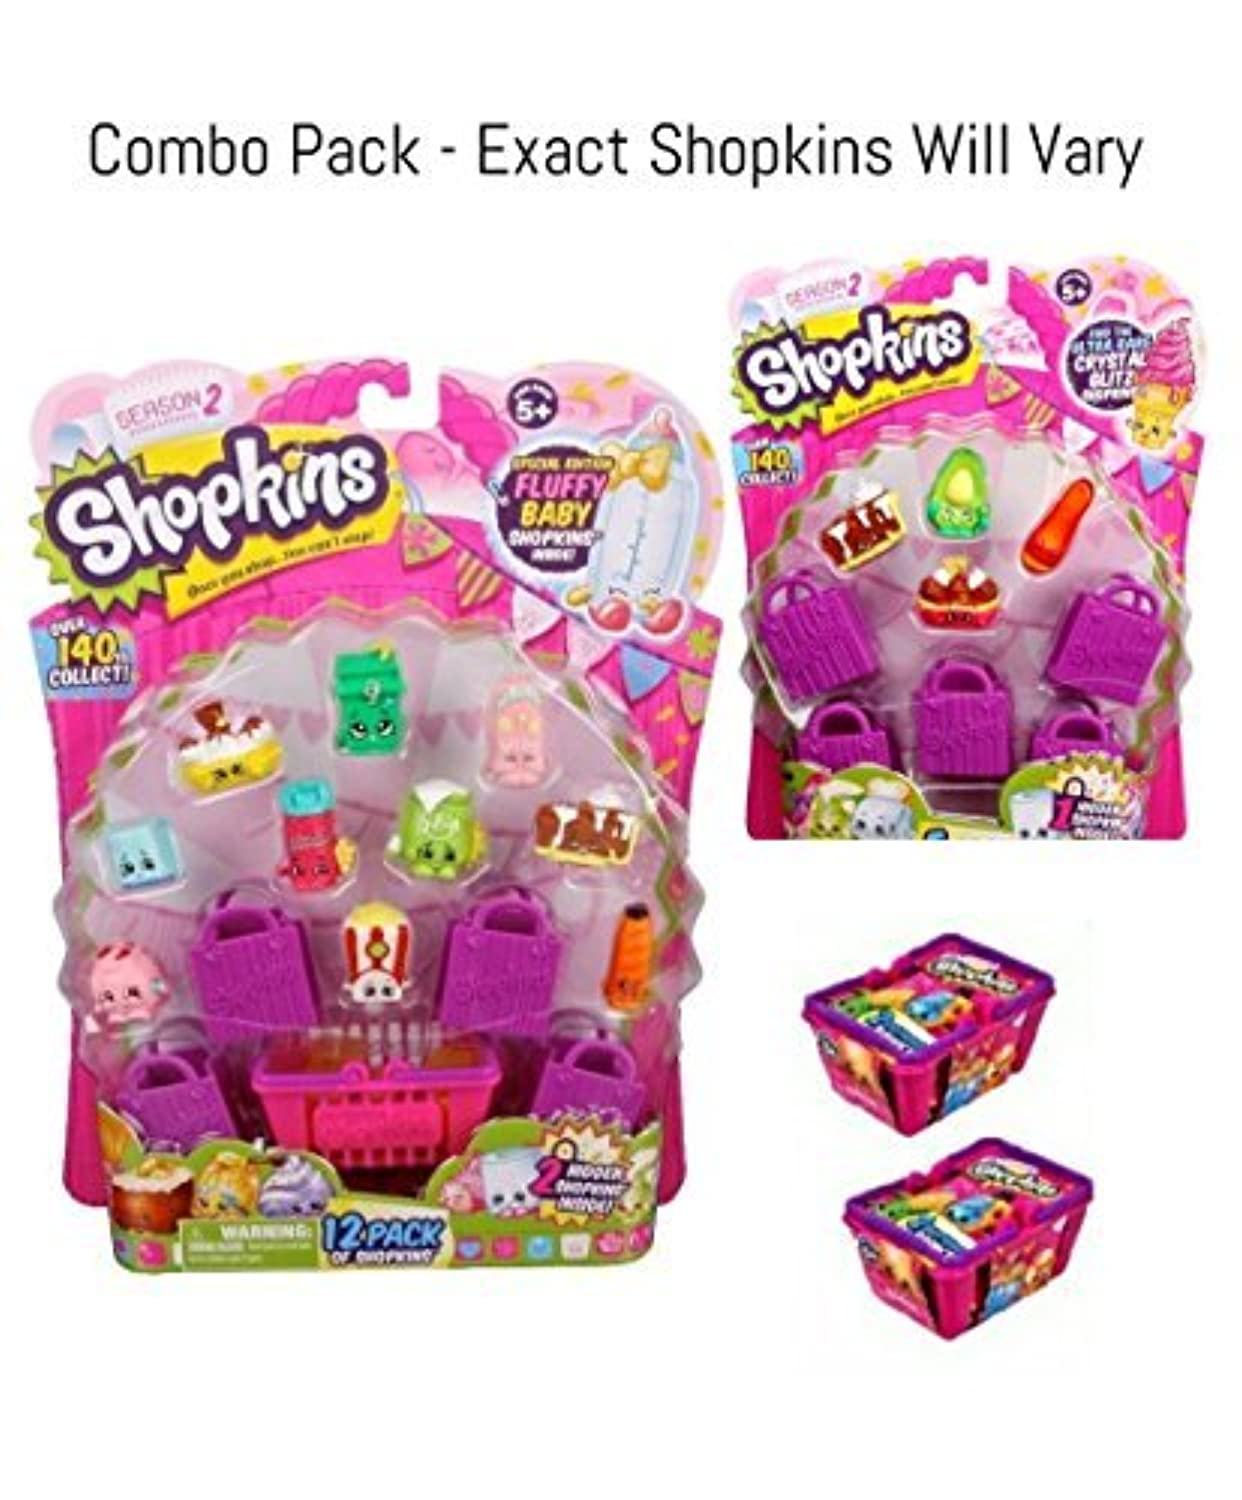 Bundle - 3 Items: Shopkins Season 2 - (1) S2 12 Pack, S2 and (2) S2 Baskets by Moose